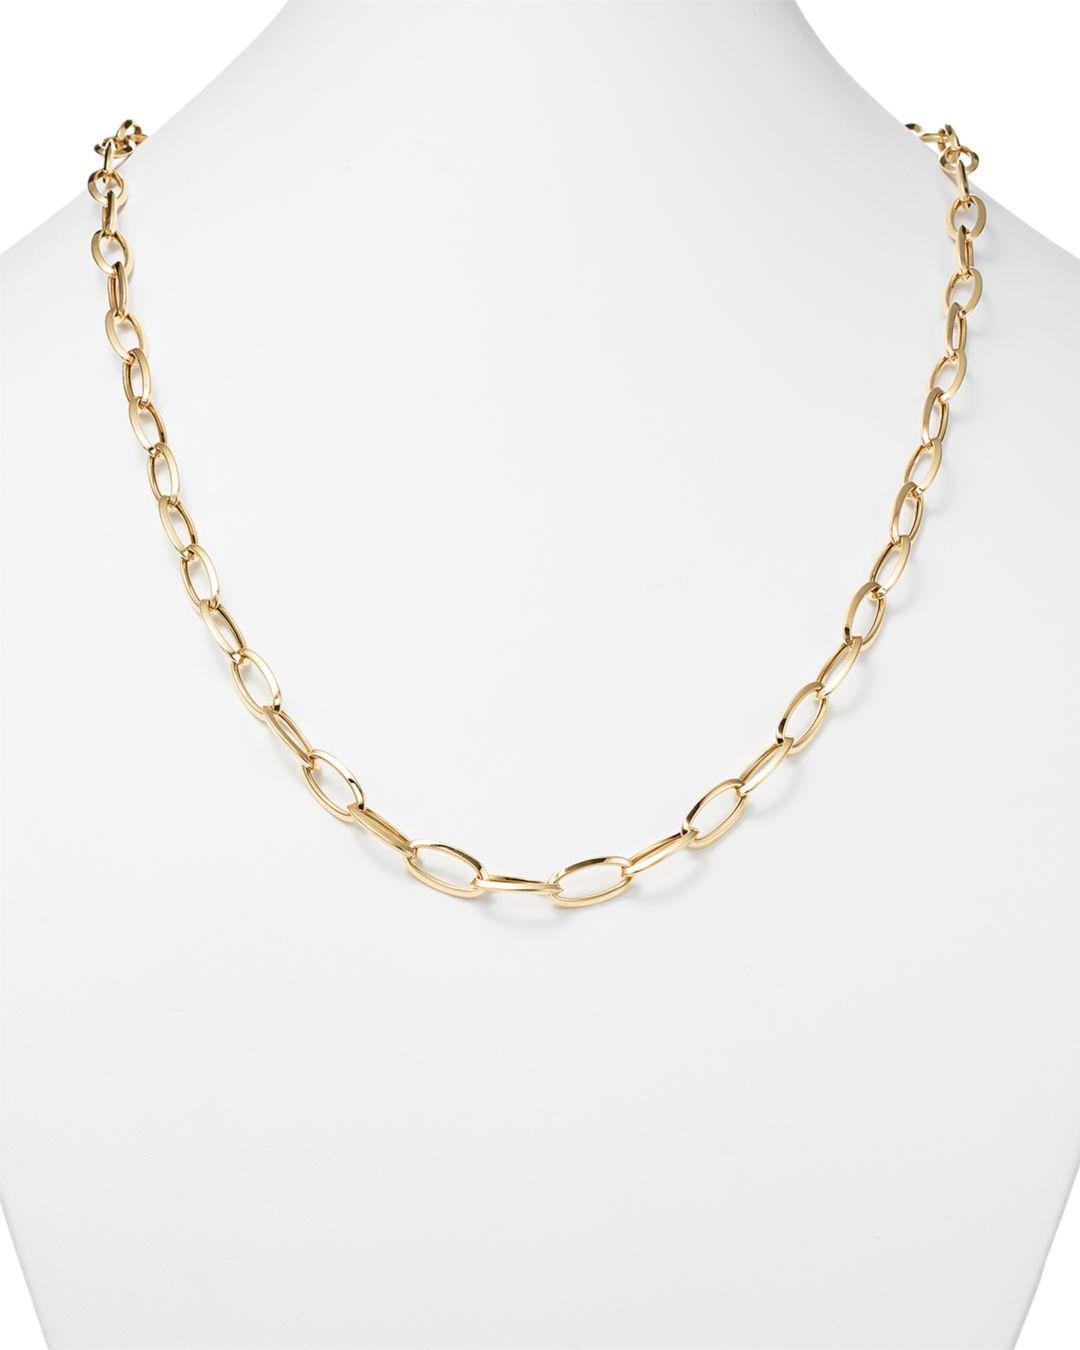 Roberto Coin 18k Yellow Gold Long Link Chain Necklace in Metallic